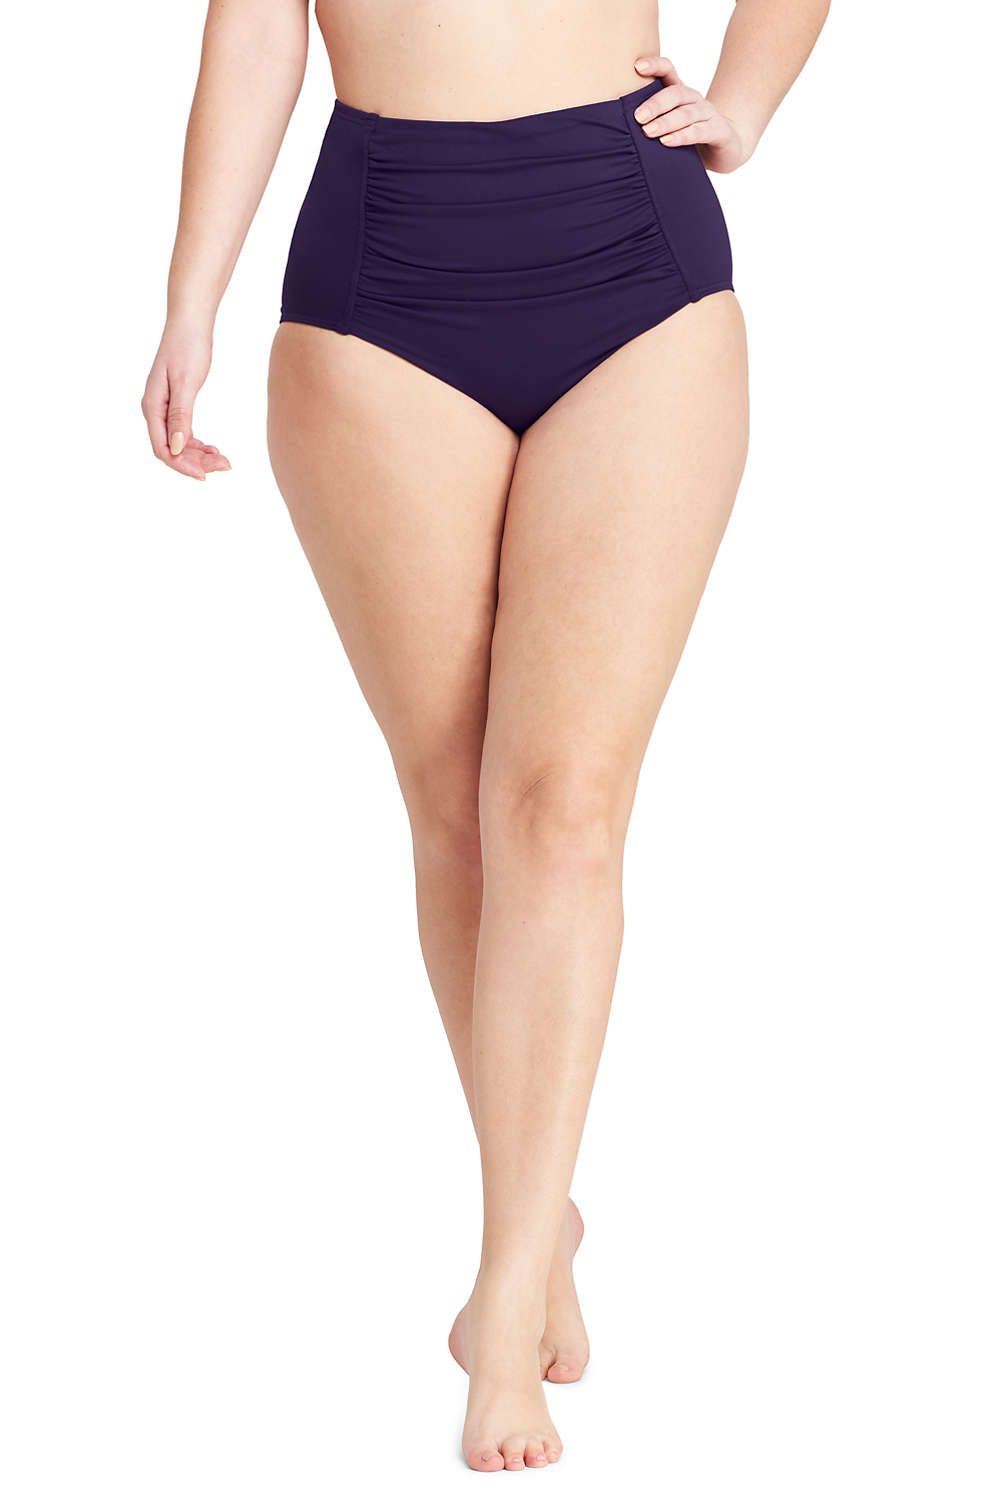 99061f35681 Women's Plus Size High Waisted Bikini Bottoms with Tummy Control from Lands'  End